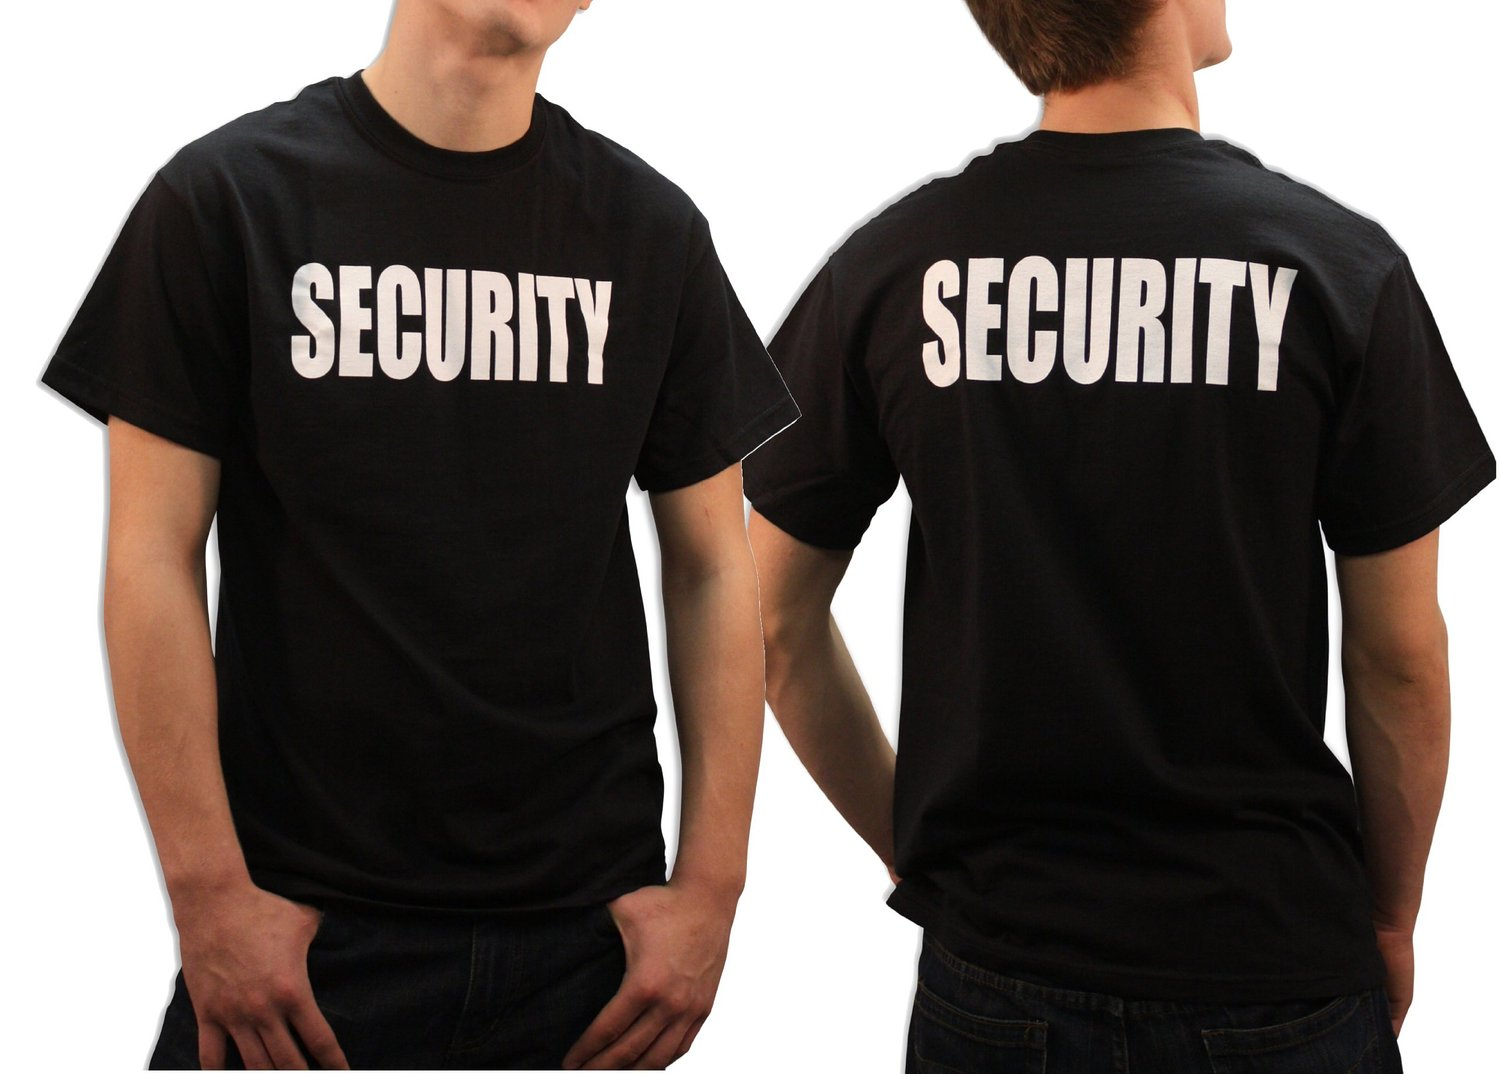 Black t shirt front and back - Aeproduct Getsubject